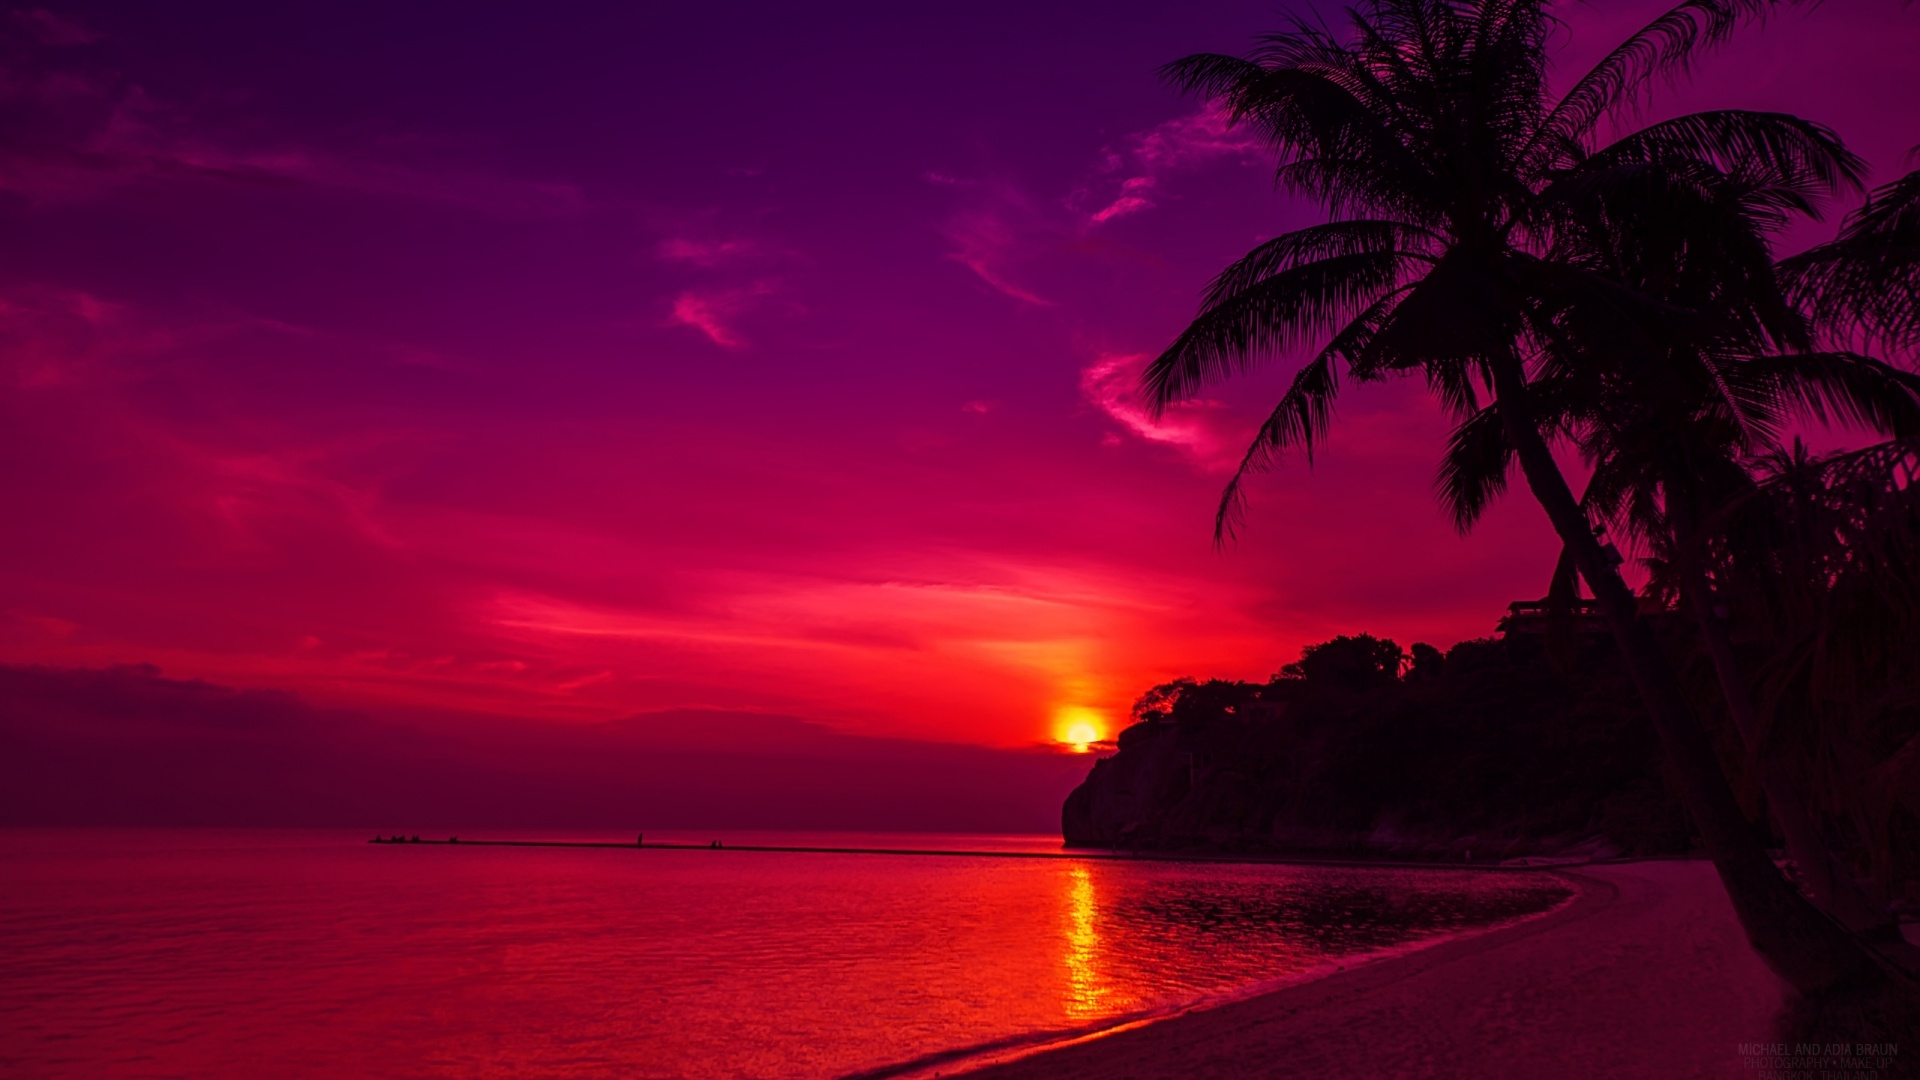 red sunset wallpaper background